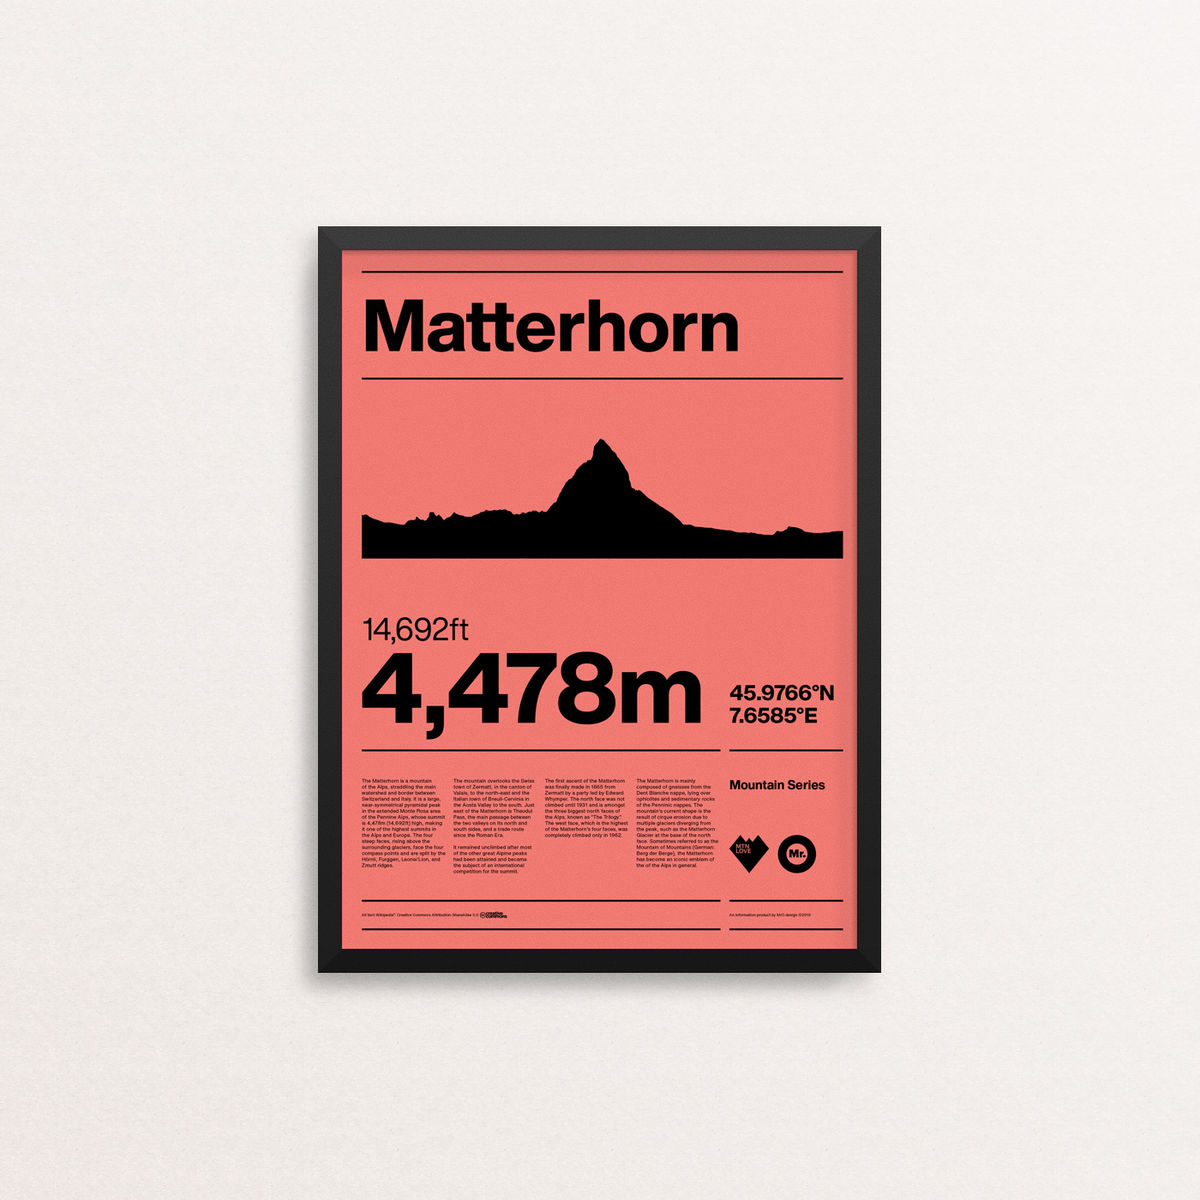 MTN Love - Matterhorn - product images  of